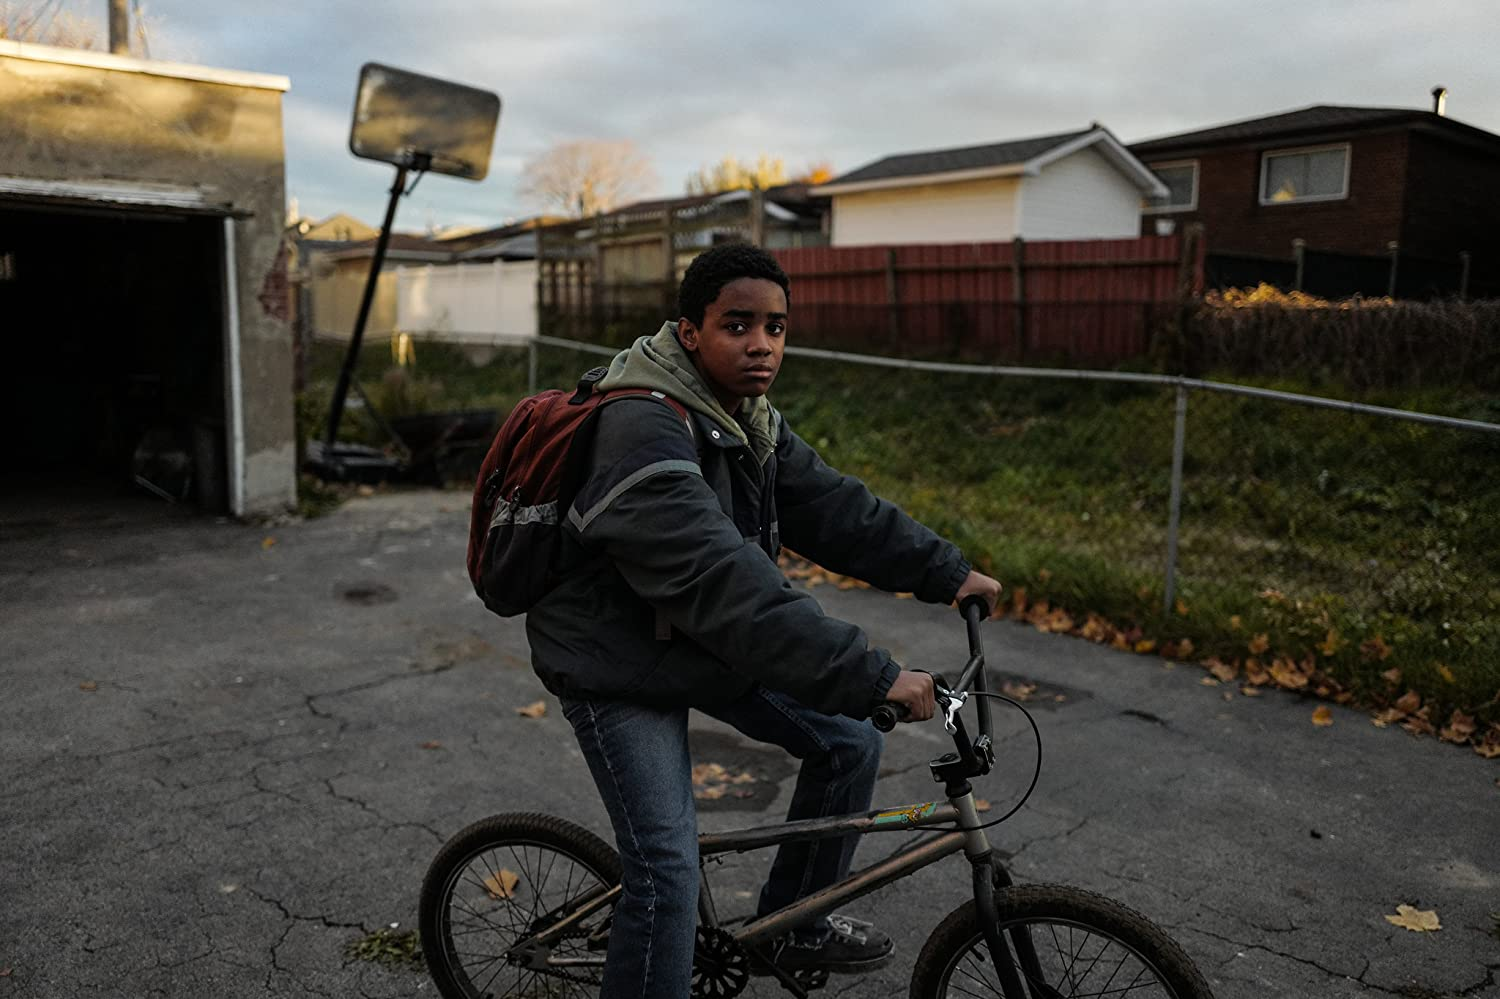 Myles Truitt plays Elijah, our young hero. As an adopted child with few friends, Eli is a bit of an outsider, and street smart enough to venture off into some pretty shady parts of Detroit by himself.  At the beginning of the film we learn that Eli's been suspended from school, but instead of waiting at home to get an earful from his father, he ventures out on his BMX to scour abandoned factories for scrap metal to sell.  As Jimmy later describes it, Eli's 'lemonade stand' on the side.